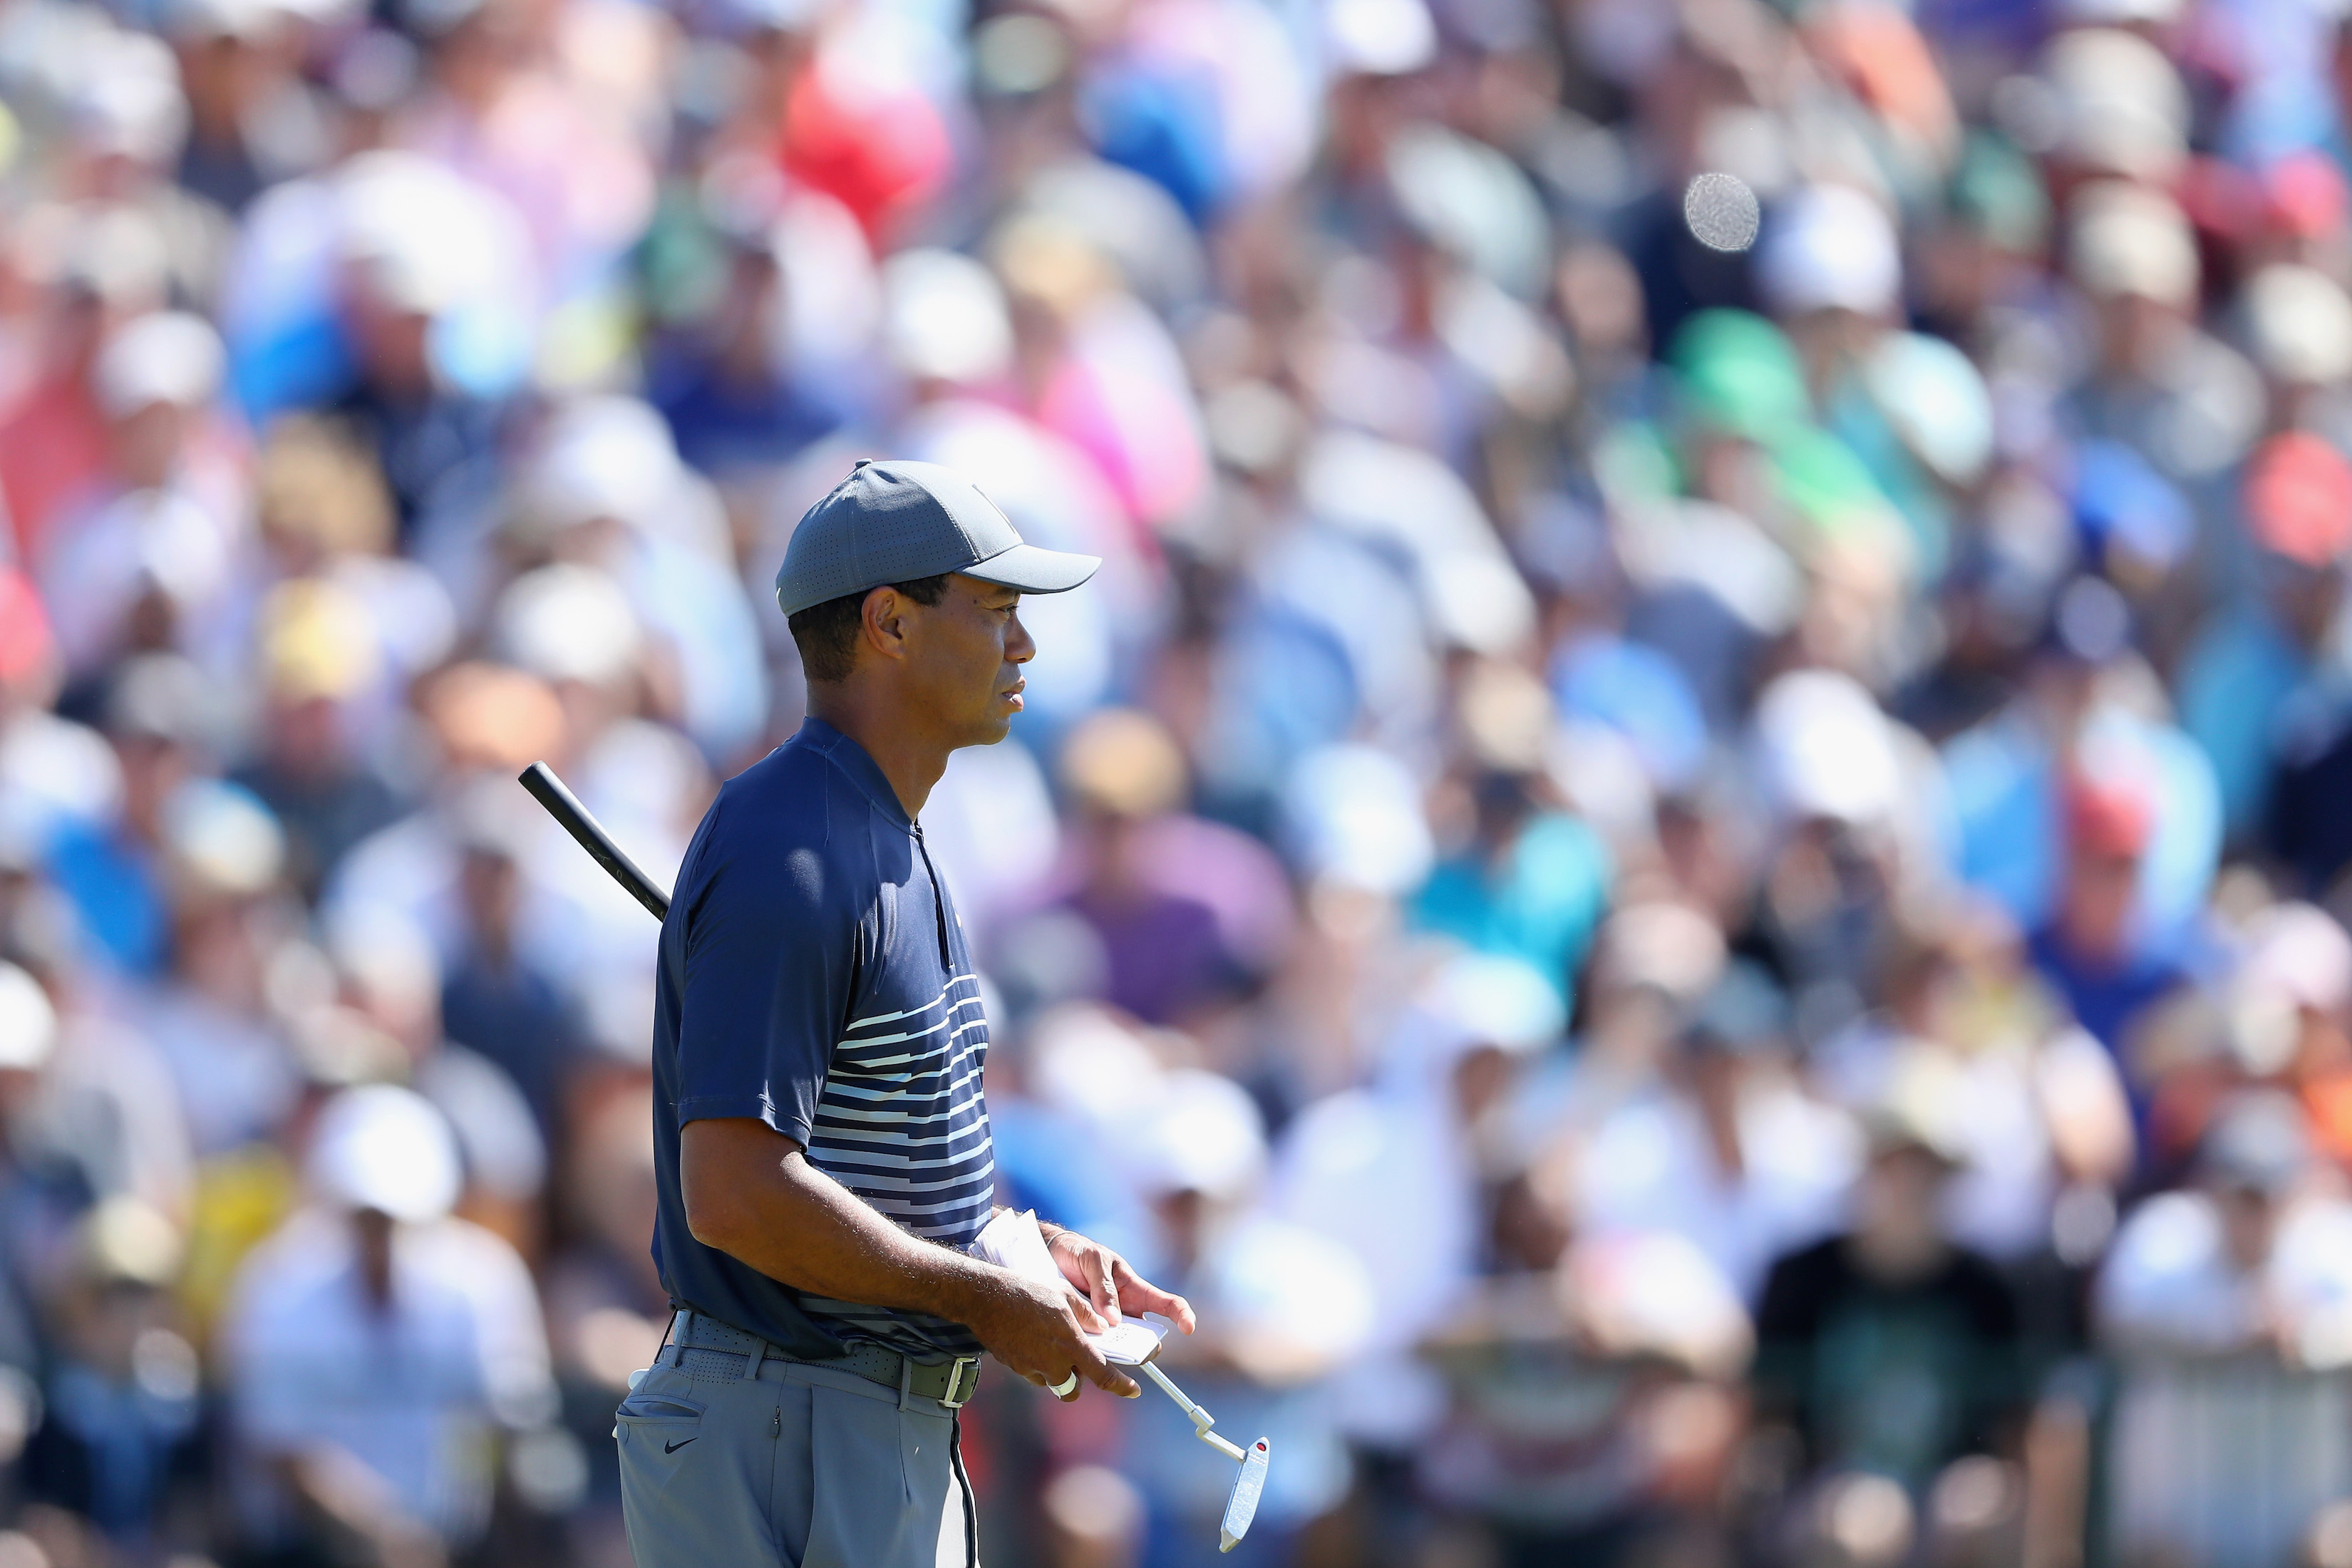 Tiger Woods Dealing With Bizarre Hecklers at the U.S. Open